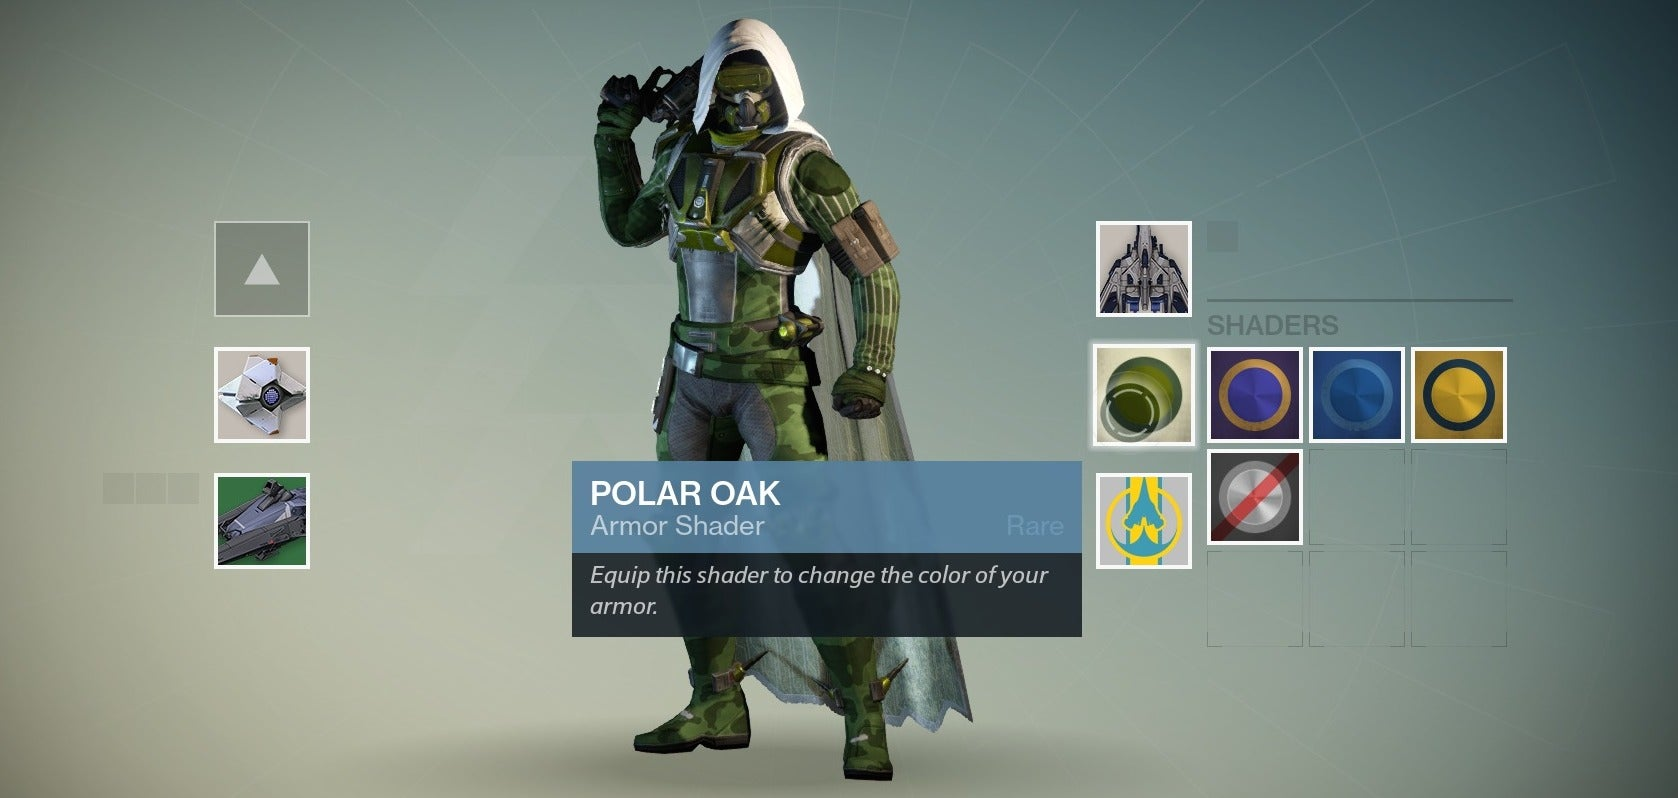 Destiny blacksmith armor shader pictures to pin on pinterest